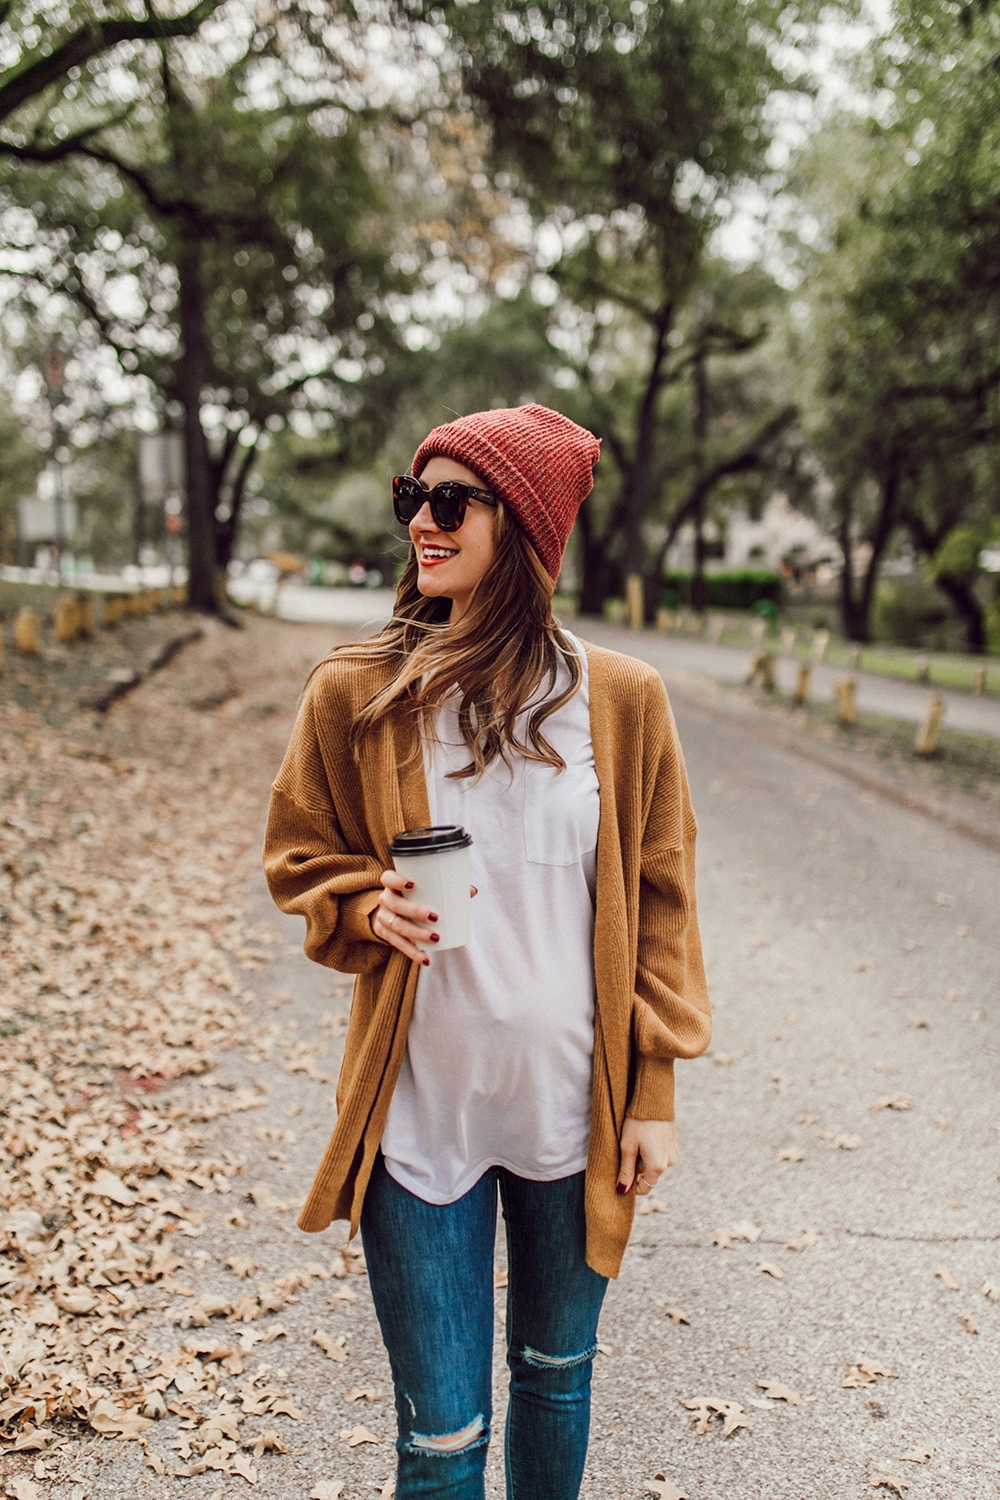 livvyland-blog-olivia-watson-austin-texas-fashion-lifestyle-blogger-mustard-cardigan-outfit-madewell-regan-boots-cyber-monday-nordstrom-sale-5